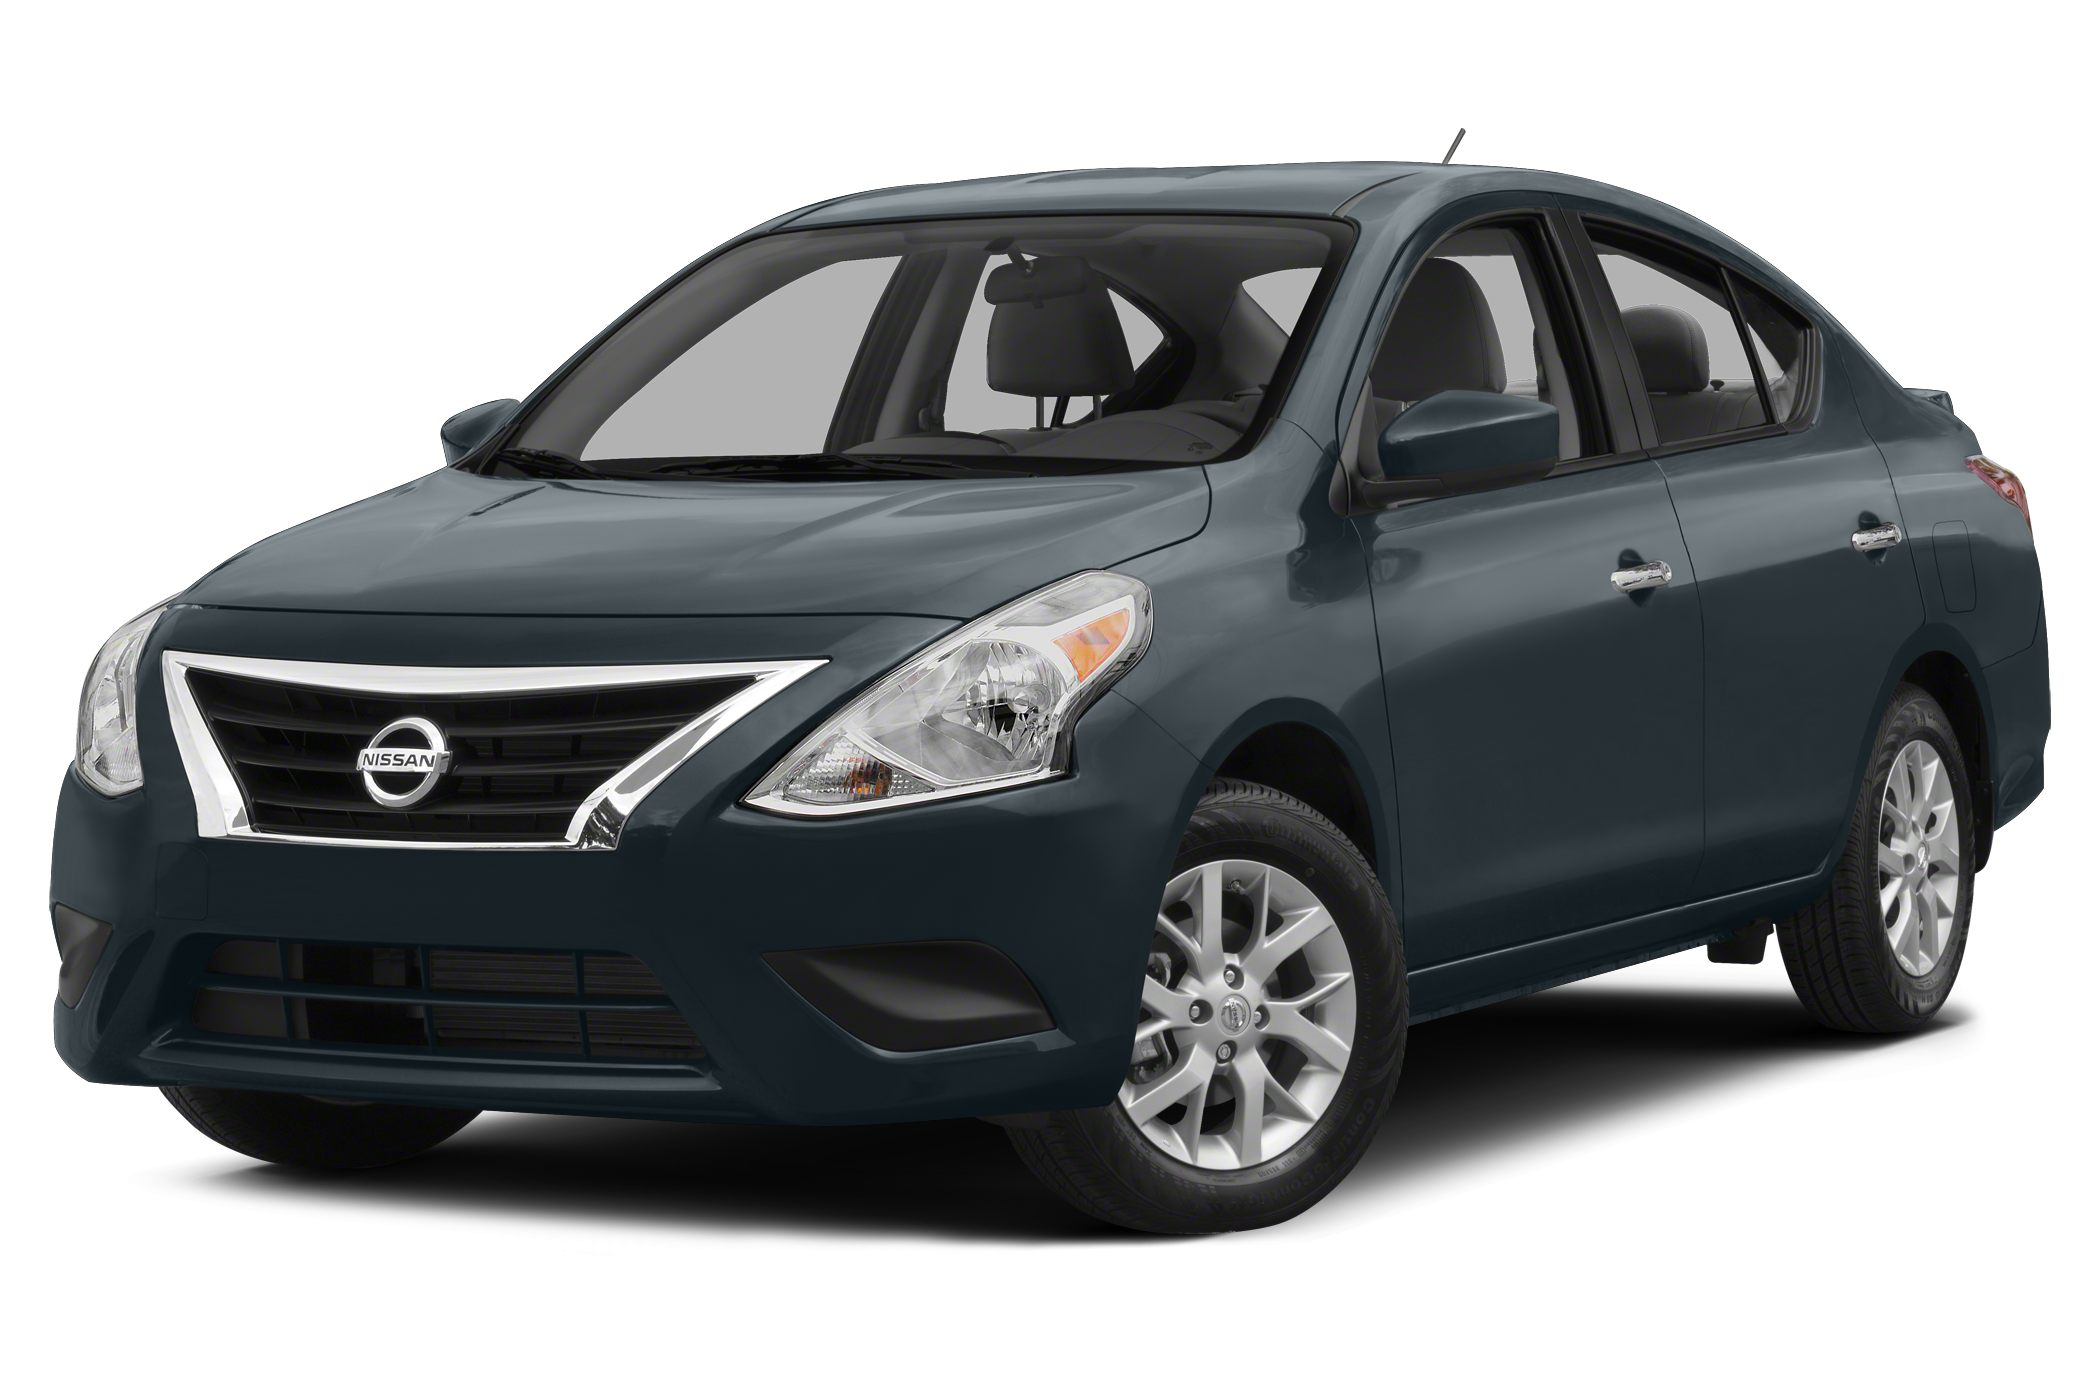 2015 Nissan Versa 1.6 SV Sedan for sale in Beech Island for $15,277 with 10 miles.